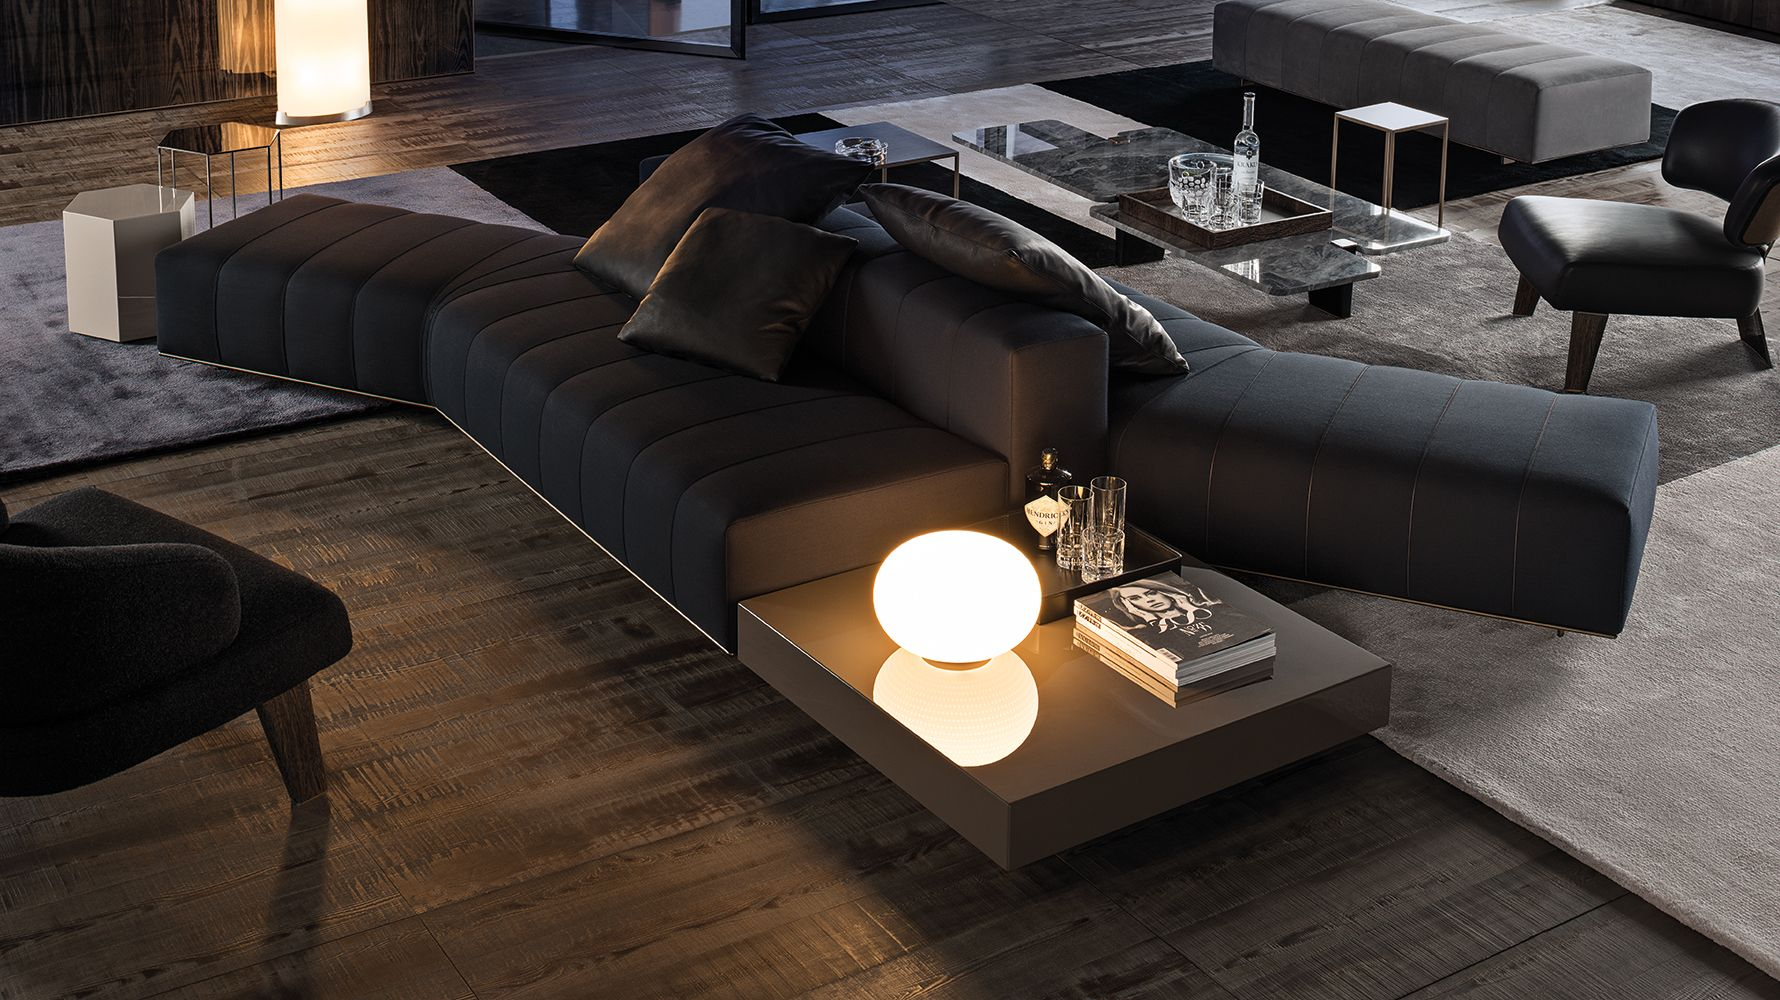 Chaise Sofa  Contemporary Basement Also Inspiring Behind Couch Table Also White Bar Stools With Arm Also Huge Black Pendant Light The Multipurpose Behind Cou u